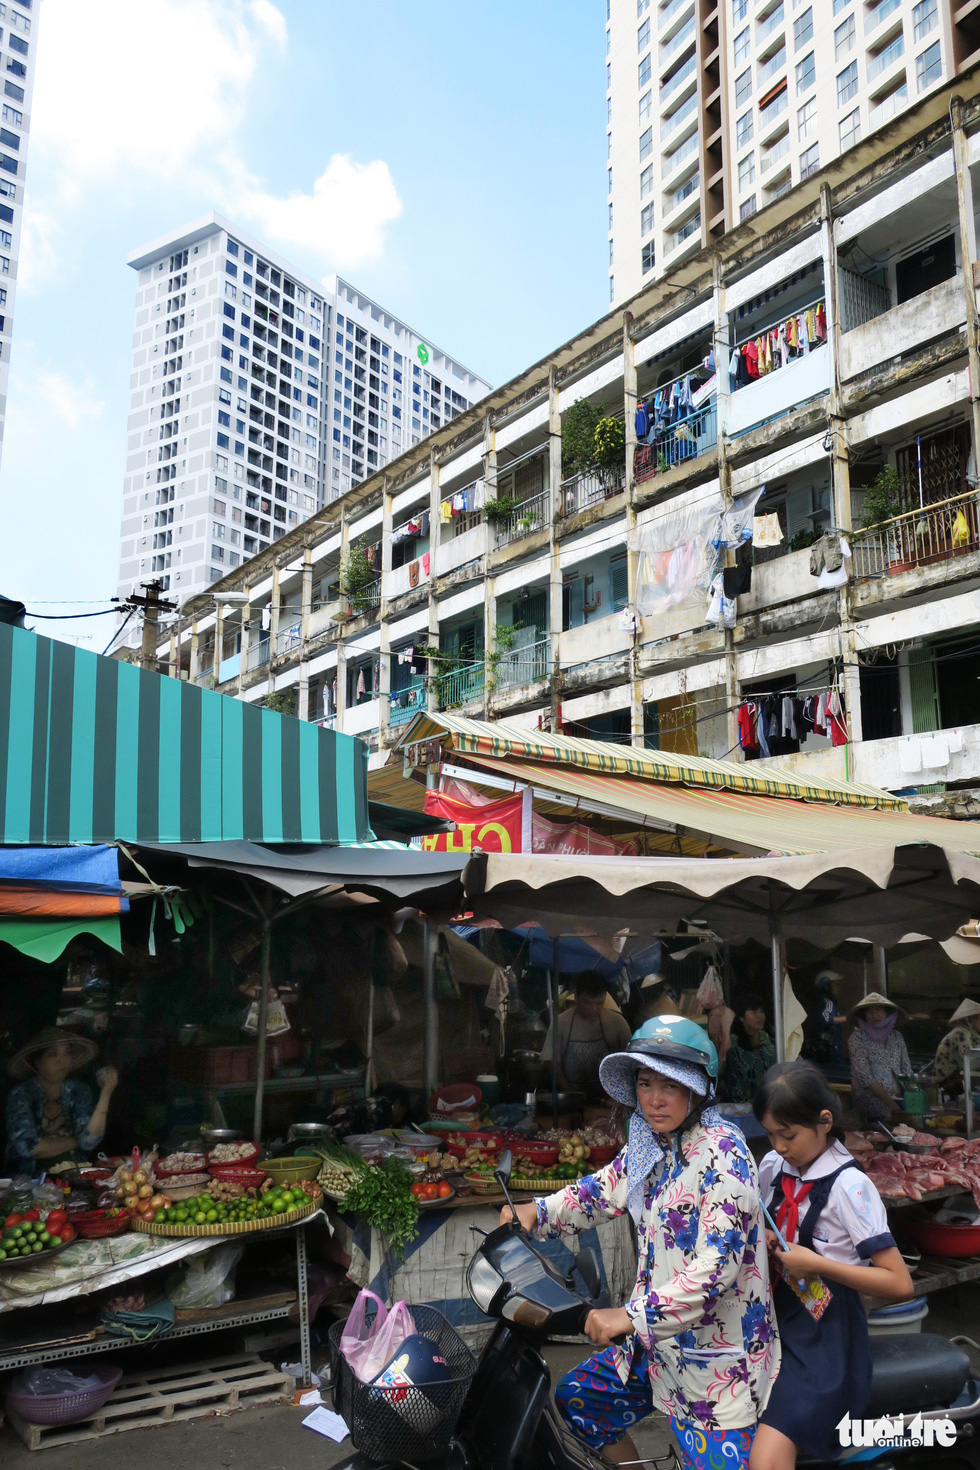 The market next to the Hang Phan apartment building in Ho Chi Minh City, Vietnam. Photo: Tuoi Tre